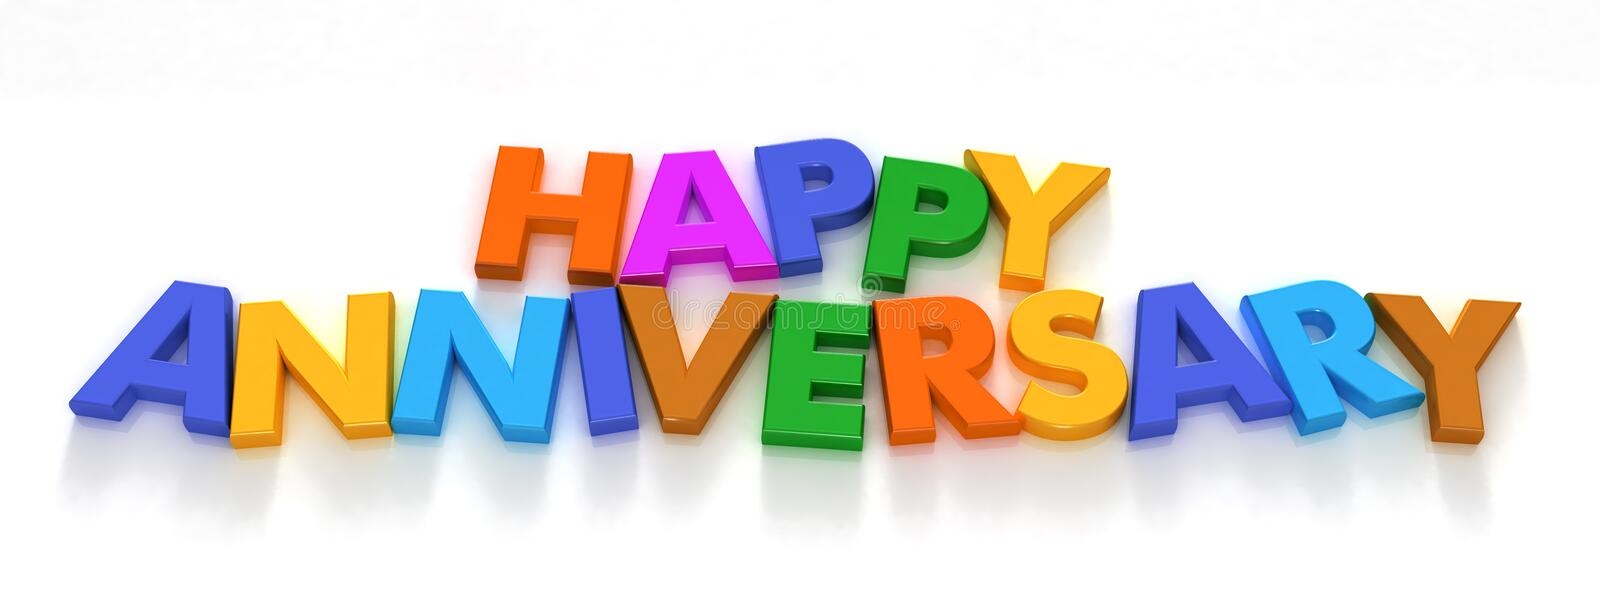 Happy Anniversary in capital letter magnets. On a neutral background royalty free stock photos